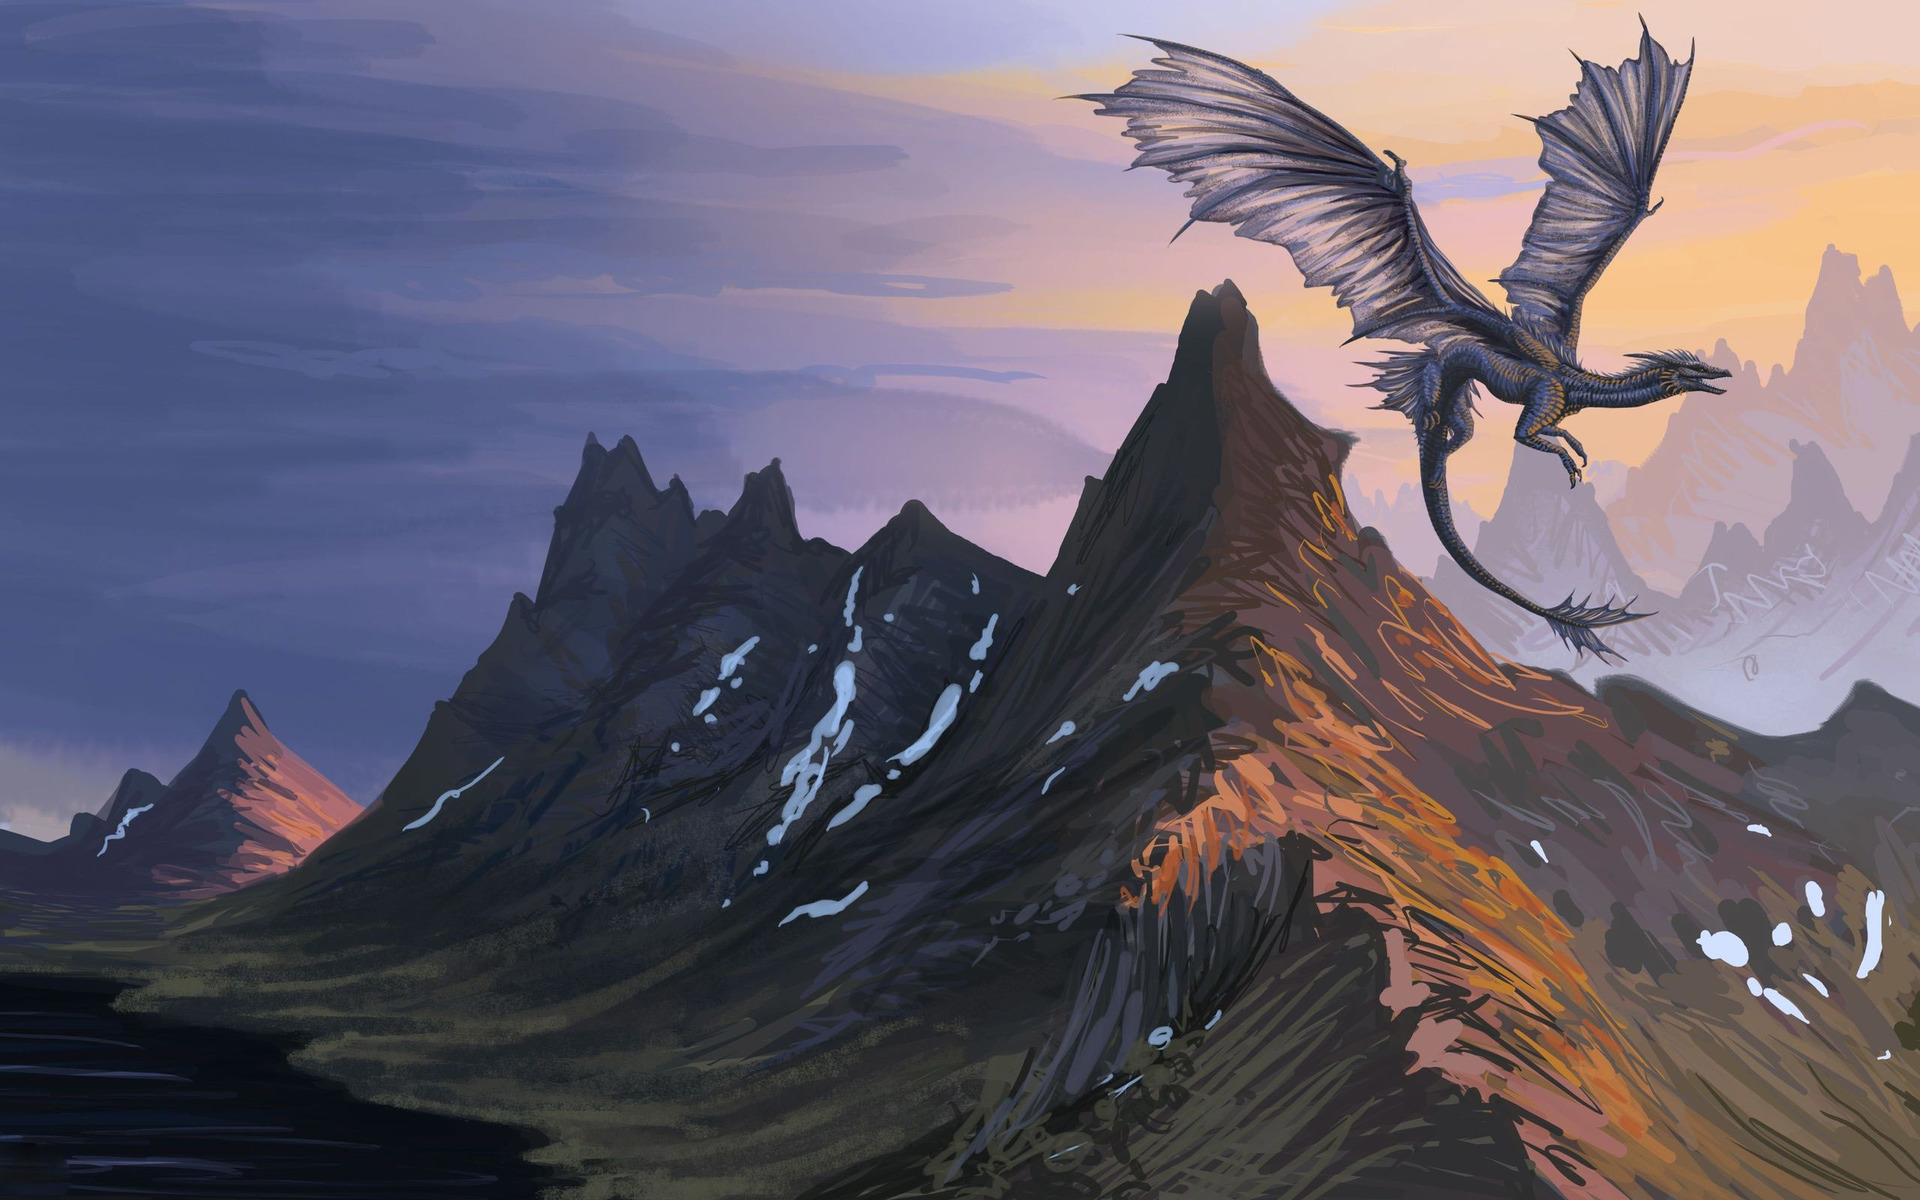 Flying dragon wallpaper 2560x1600   jhmn1m 1920x1200